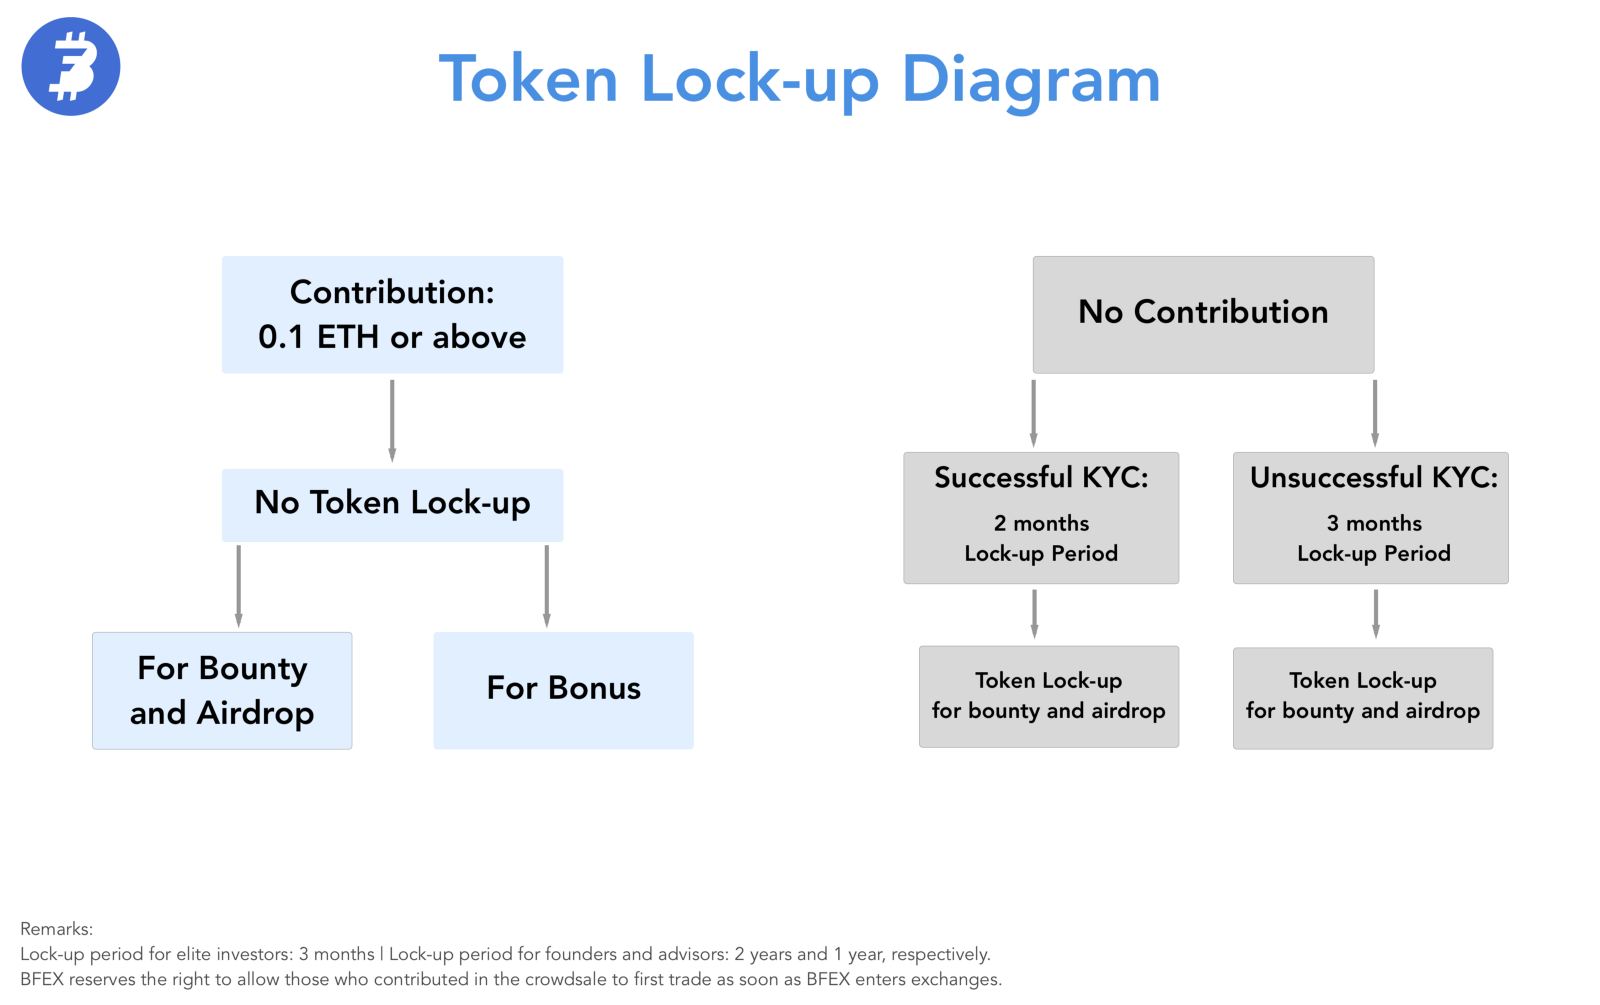 Contribution of 0.1 ETH or above: No lock-up period ...